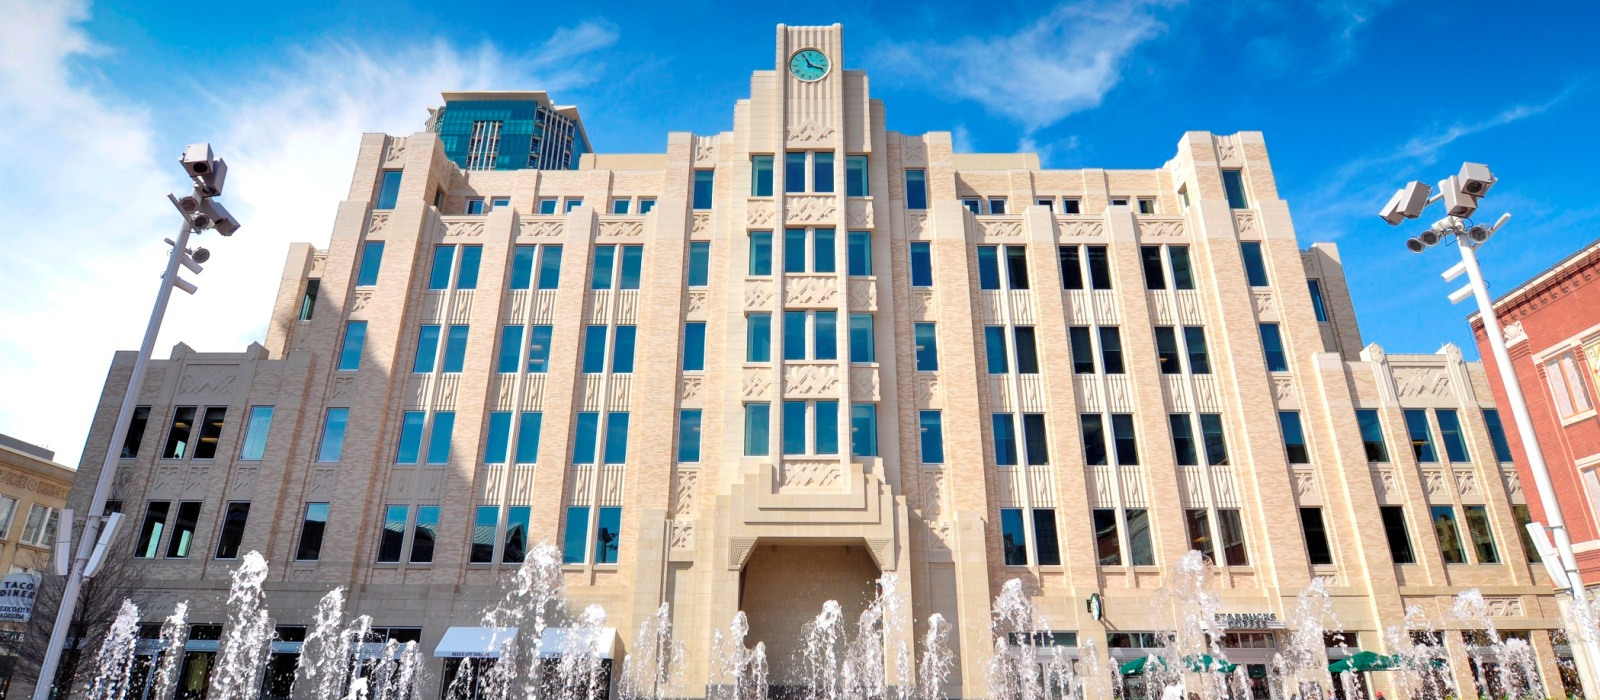 The Westbrook Building at Sundance Square, Ft Worth, TX | Art Deco Design, Custom Design Elements using Cast Stone, GFRC